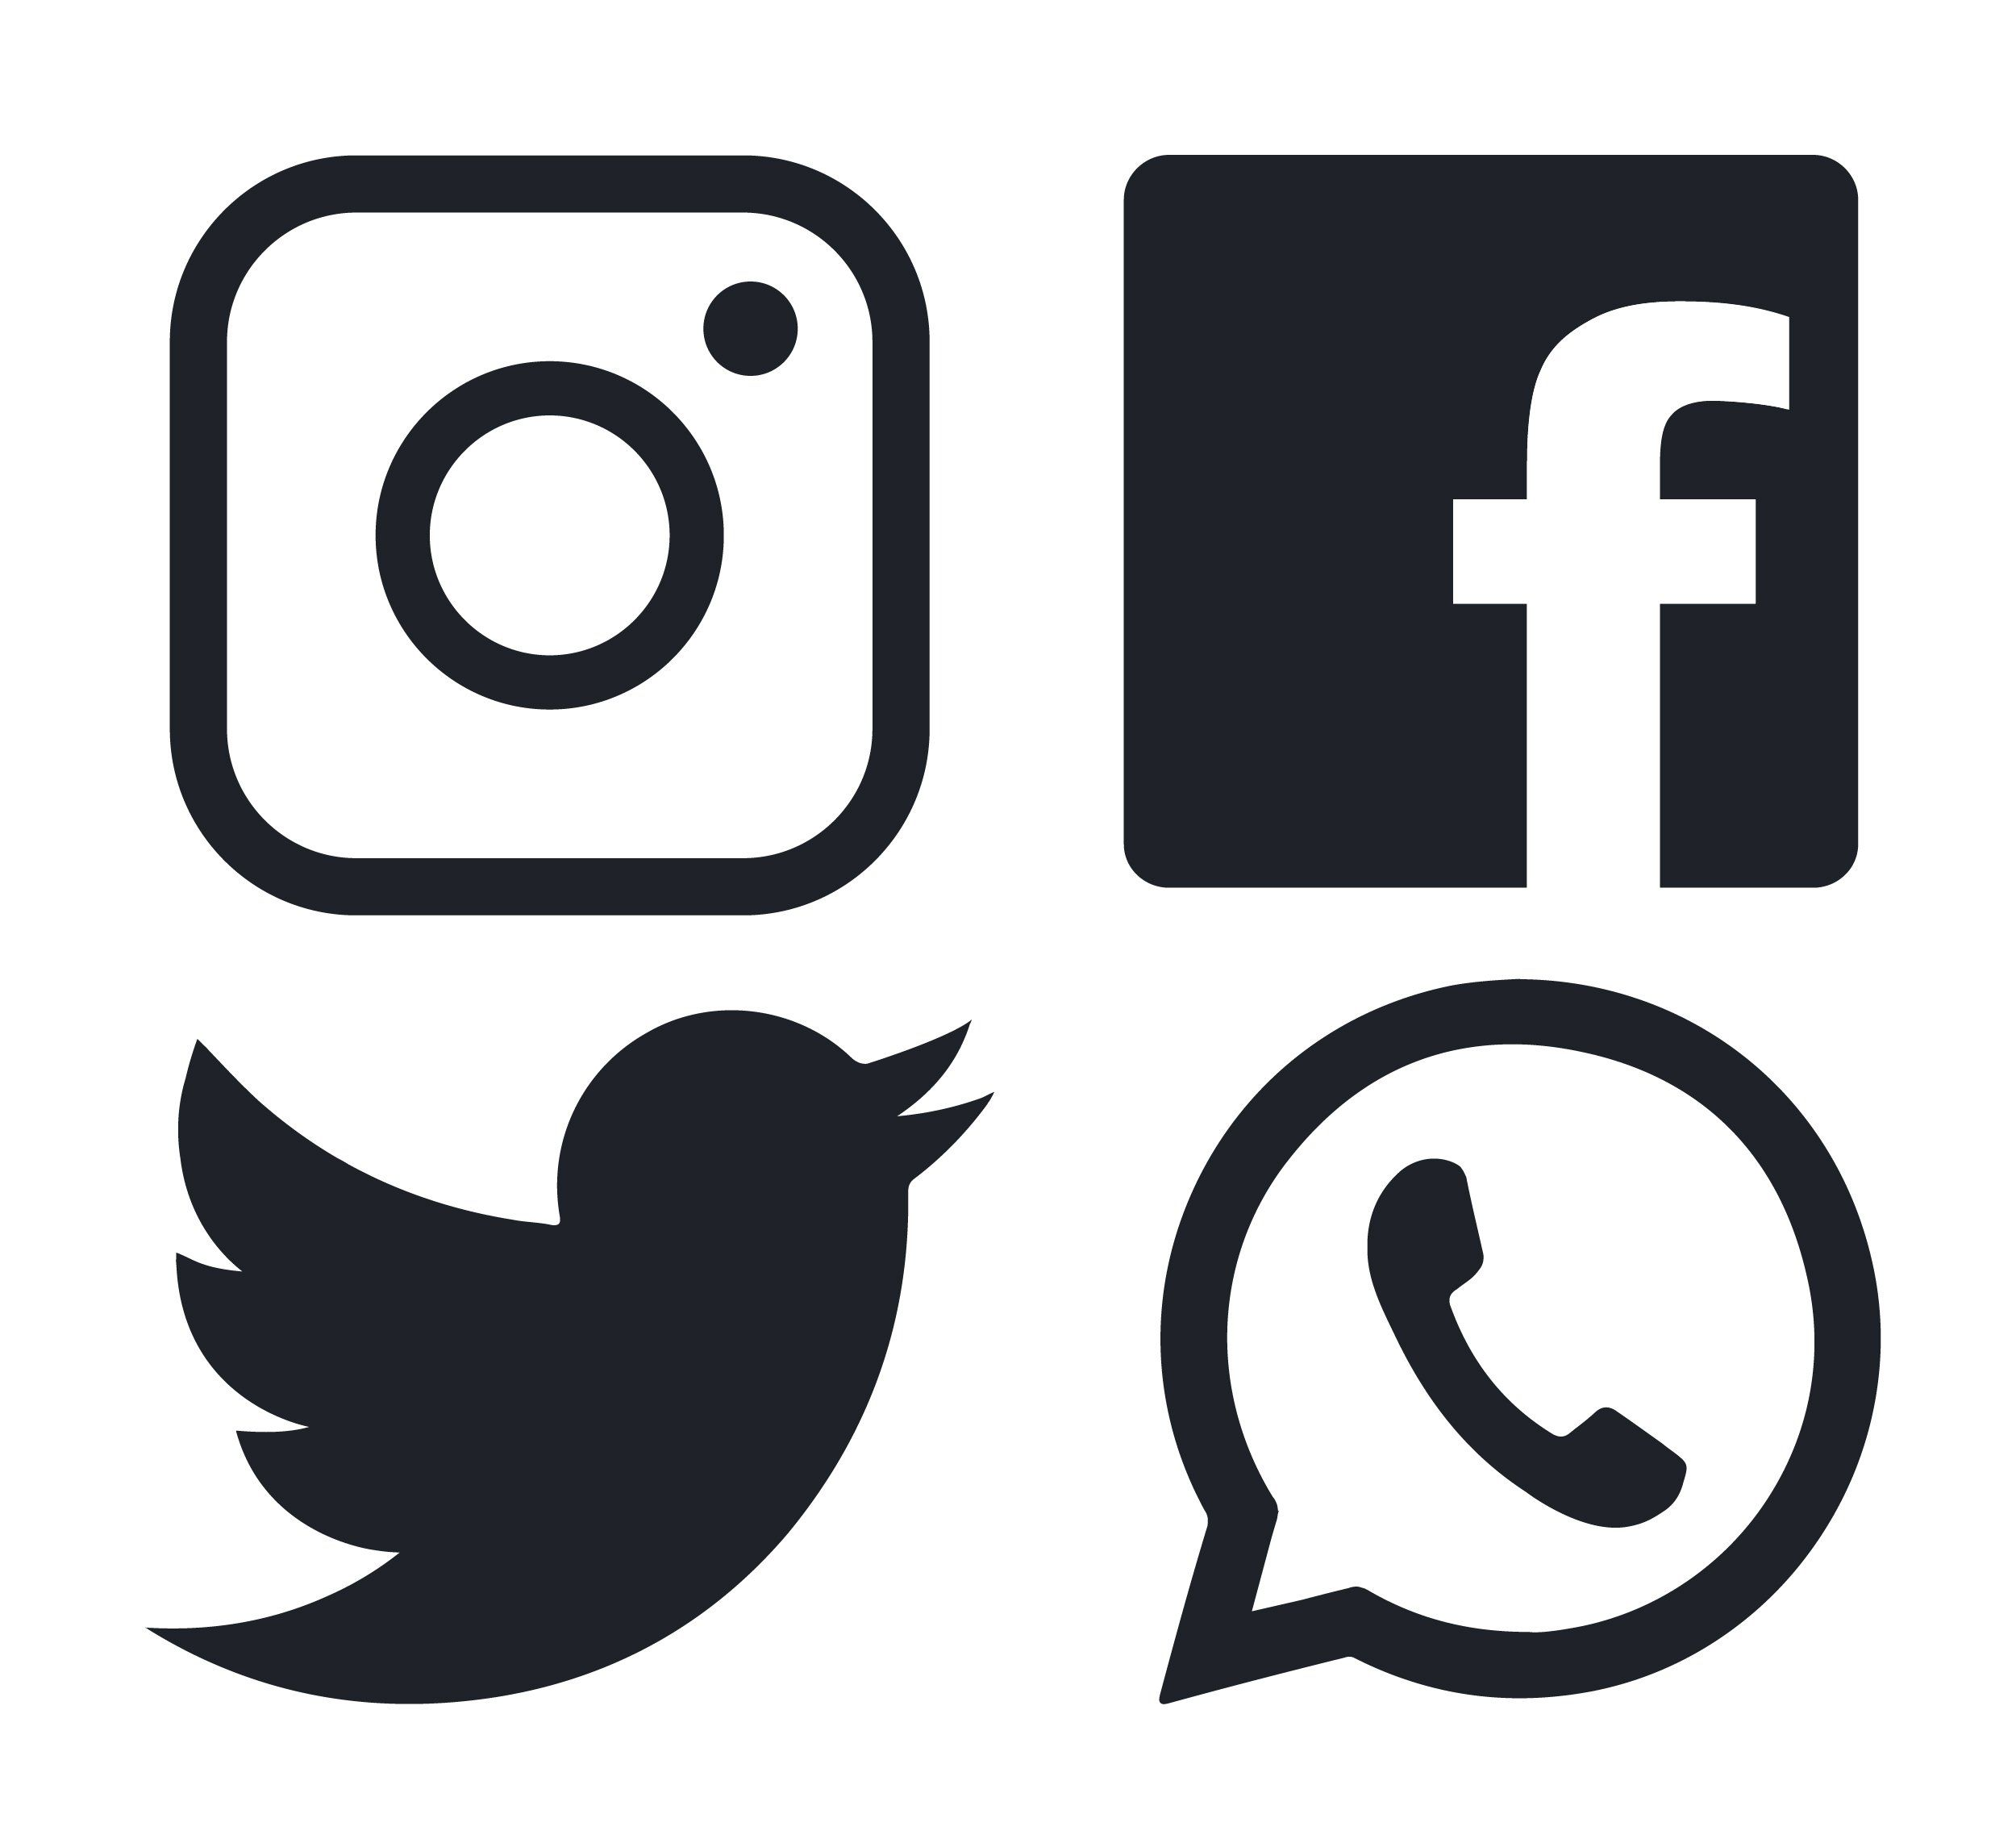 Facebook Twitter And Instagram Logo With Images Instagram